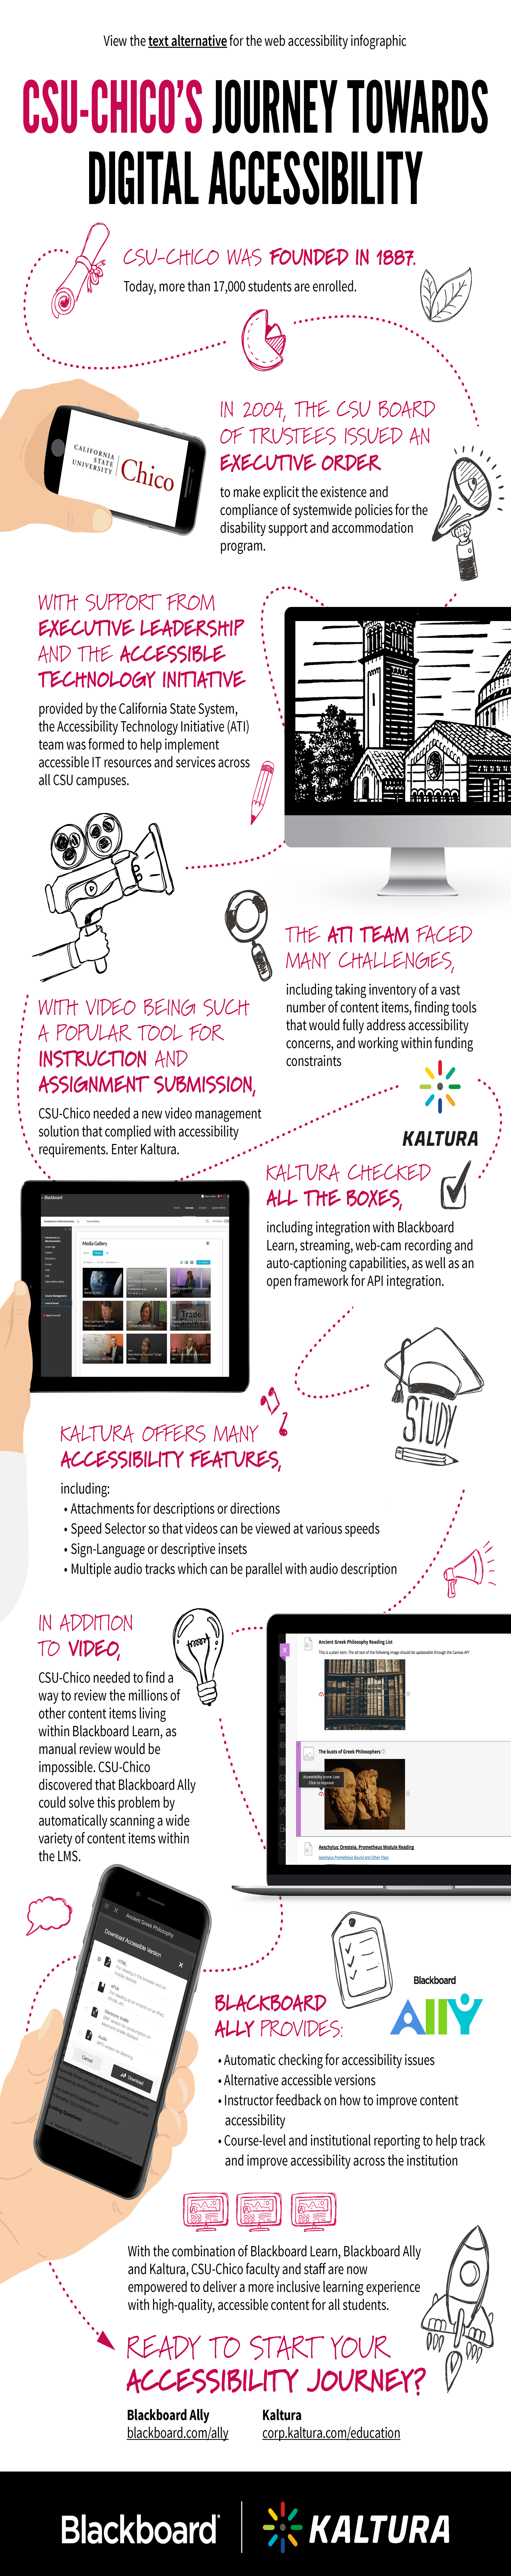 Chico's path to digital accessibility